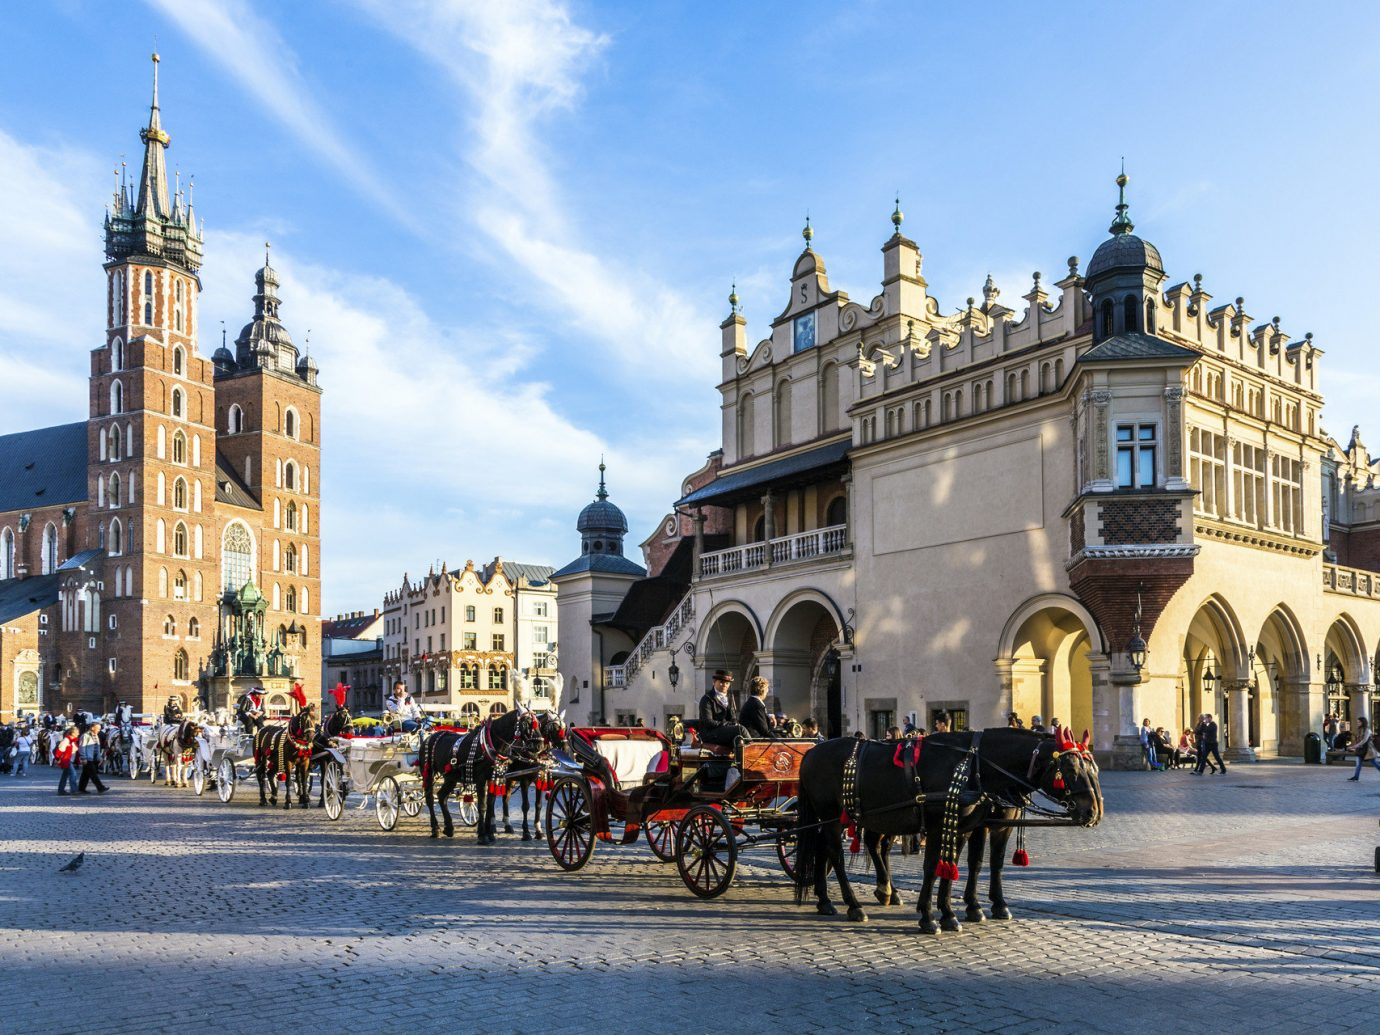 Trip Ideas outdoor building road street landmark Town City Winter town square plaza tourism cityscape season Downtown cathedral tours palace carriage drawn square